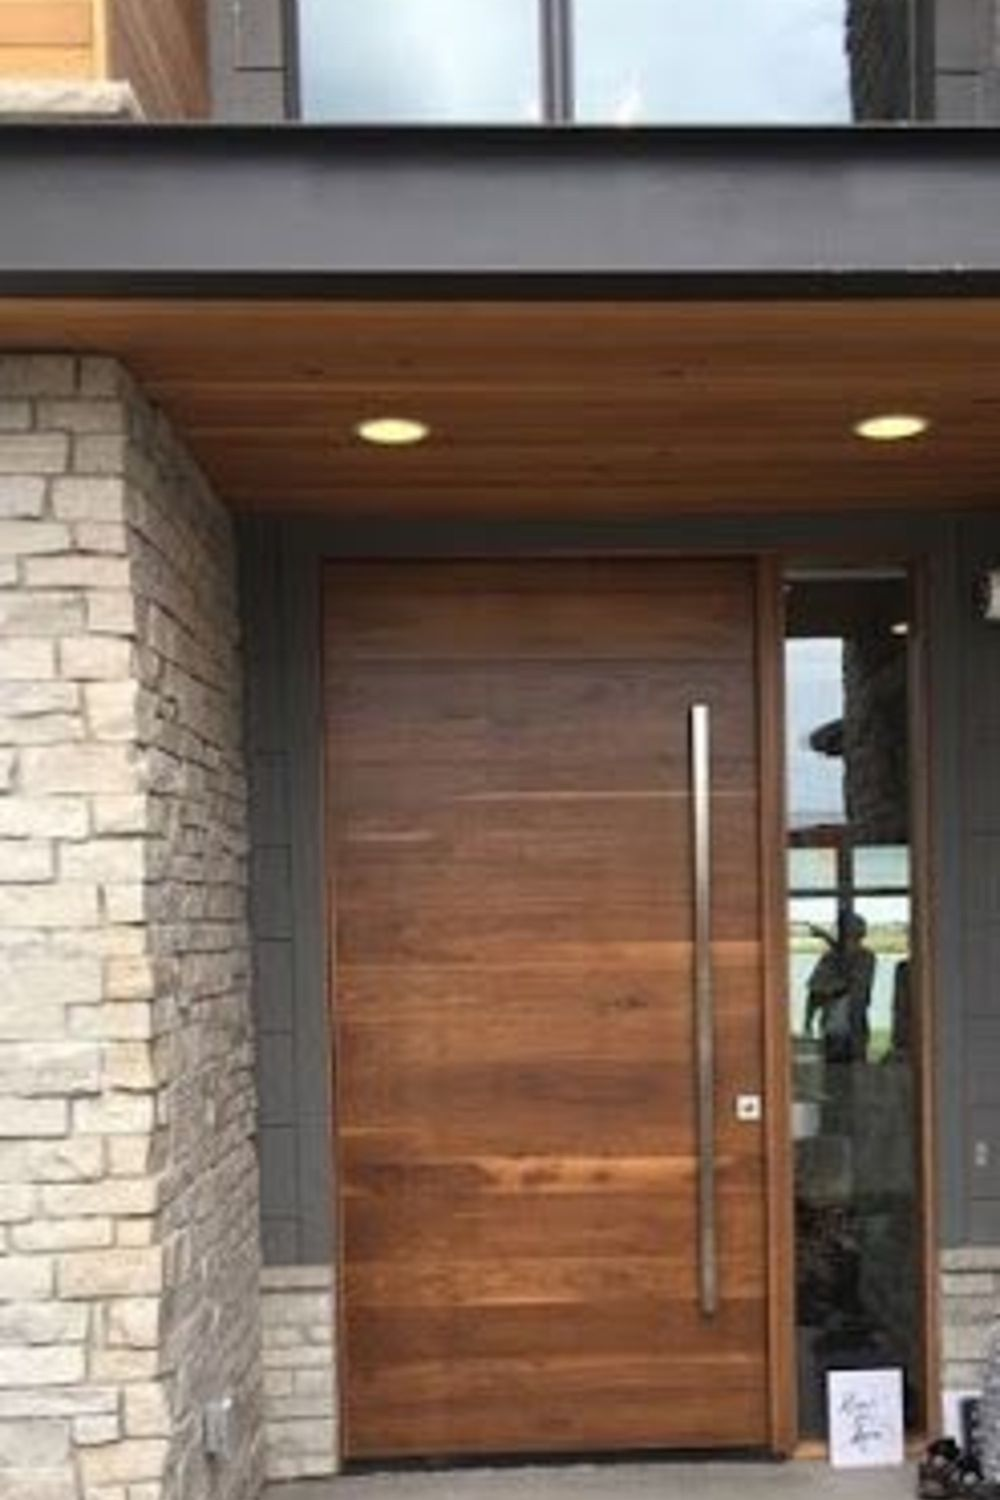 Home Entrance Door House Wood Keyhole Property Building Home Automotive Exterior House In 2020 Modern Exterior Doors Modern Entrance Door Entrance Door Design